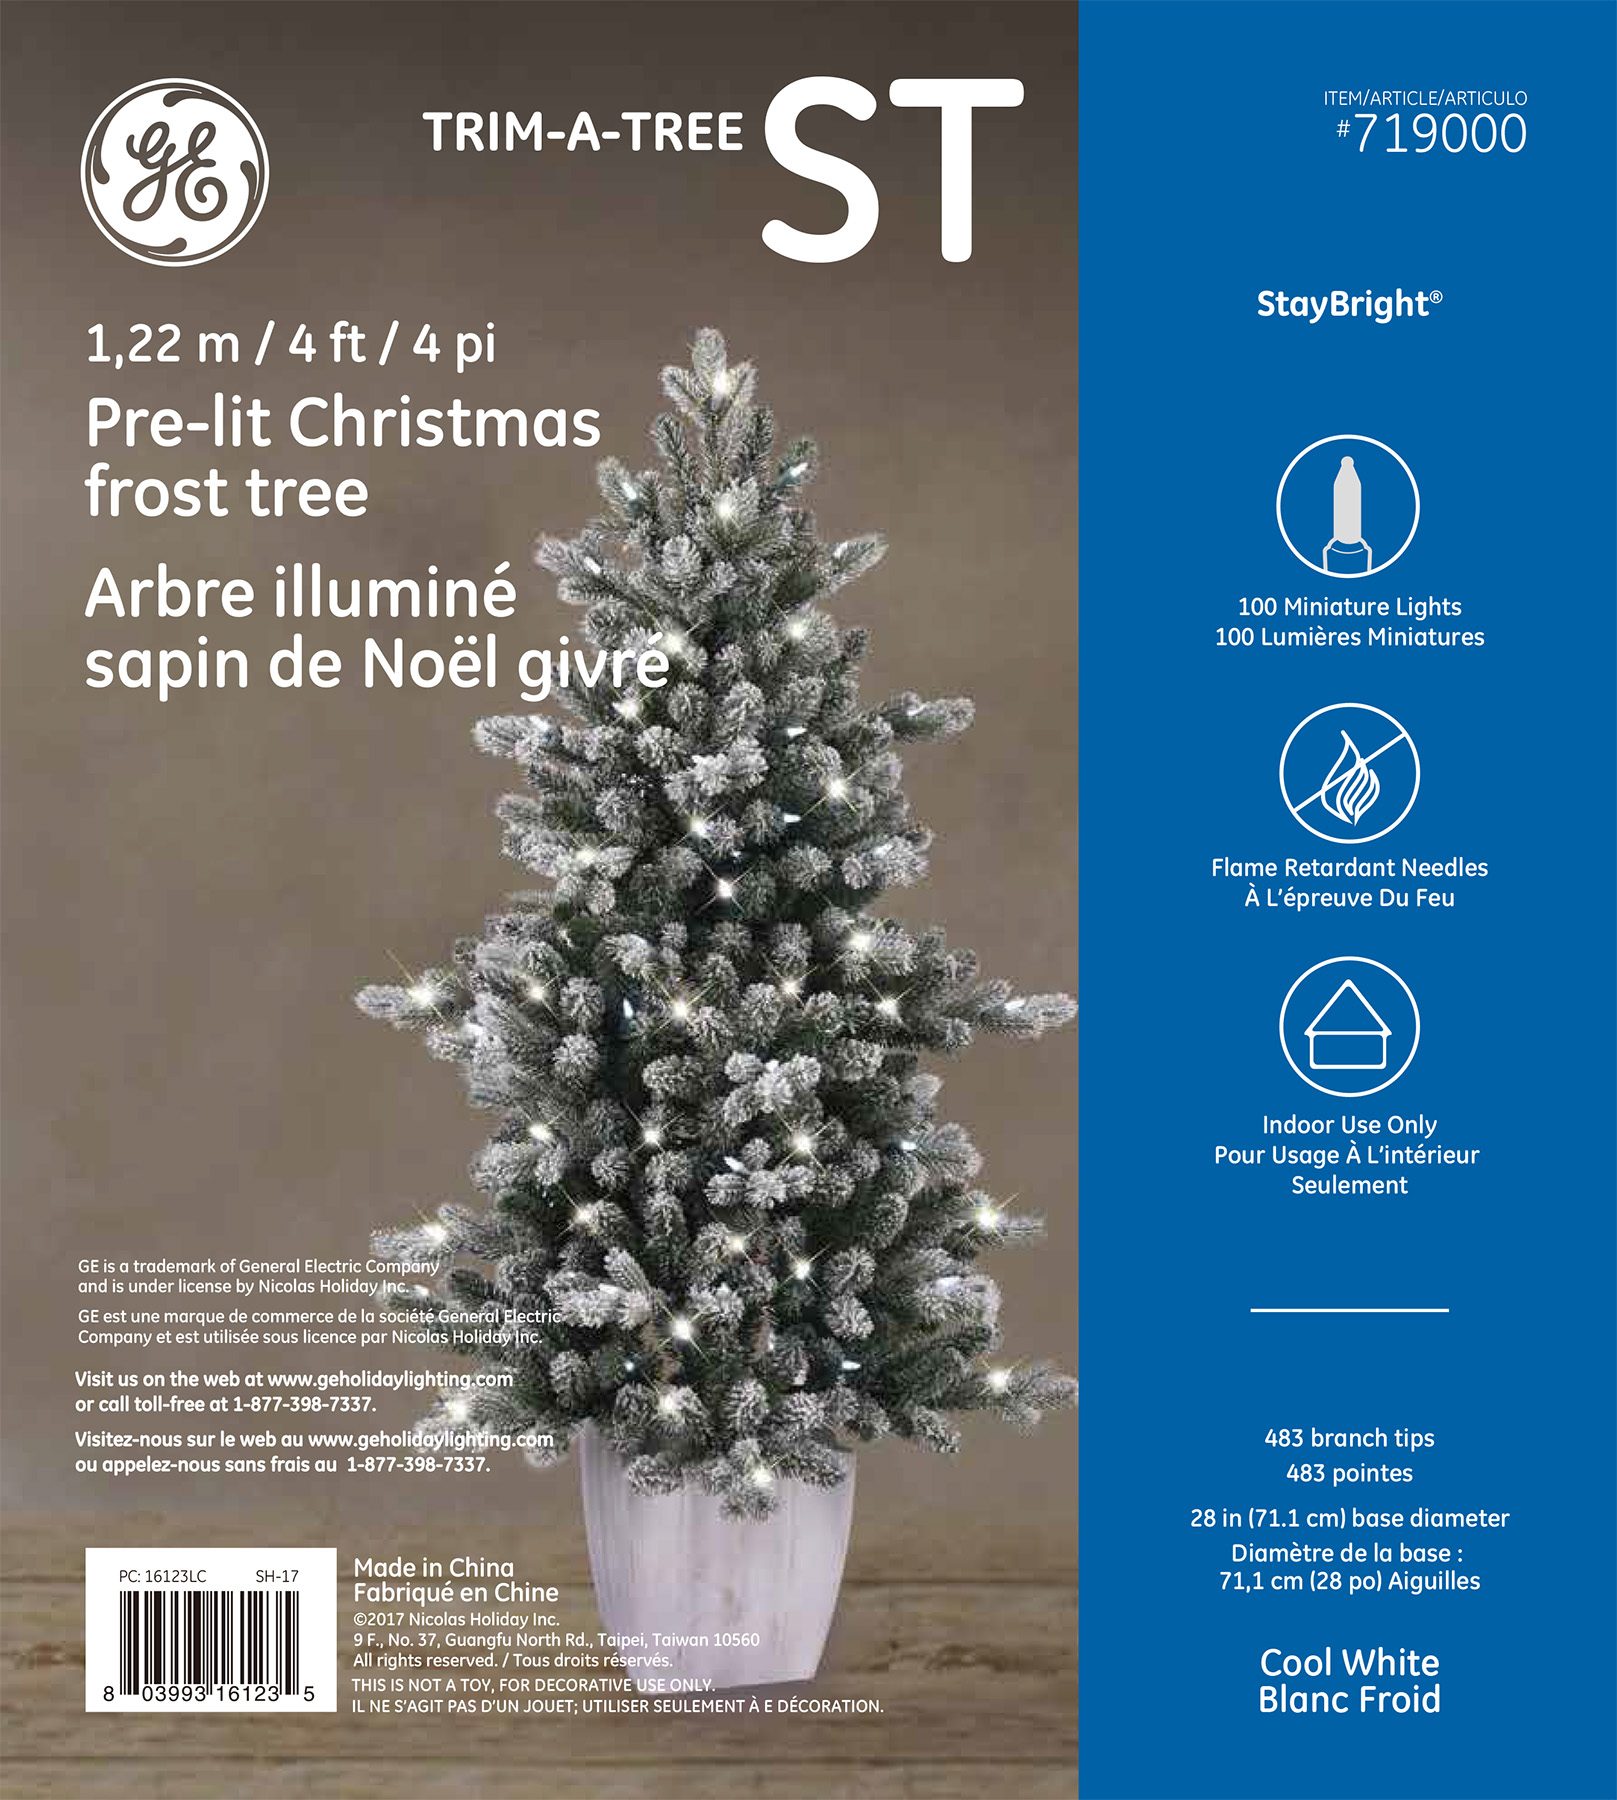 16123 ge christmas frost tree 4 ft staybright led 100ct 55mm lights cool white